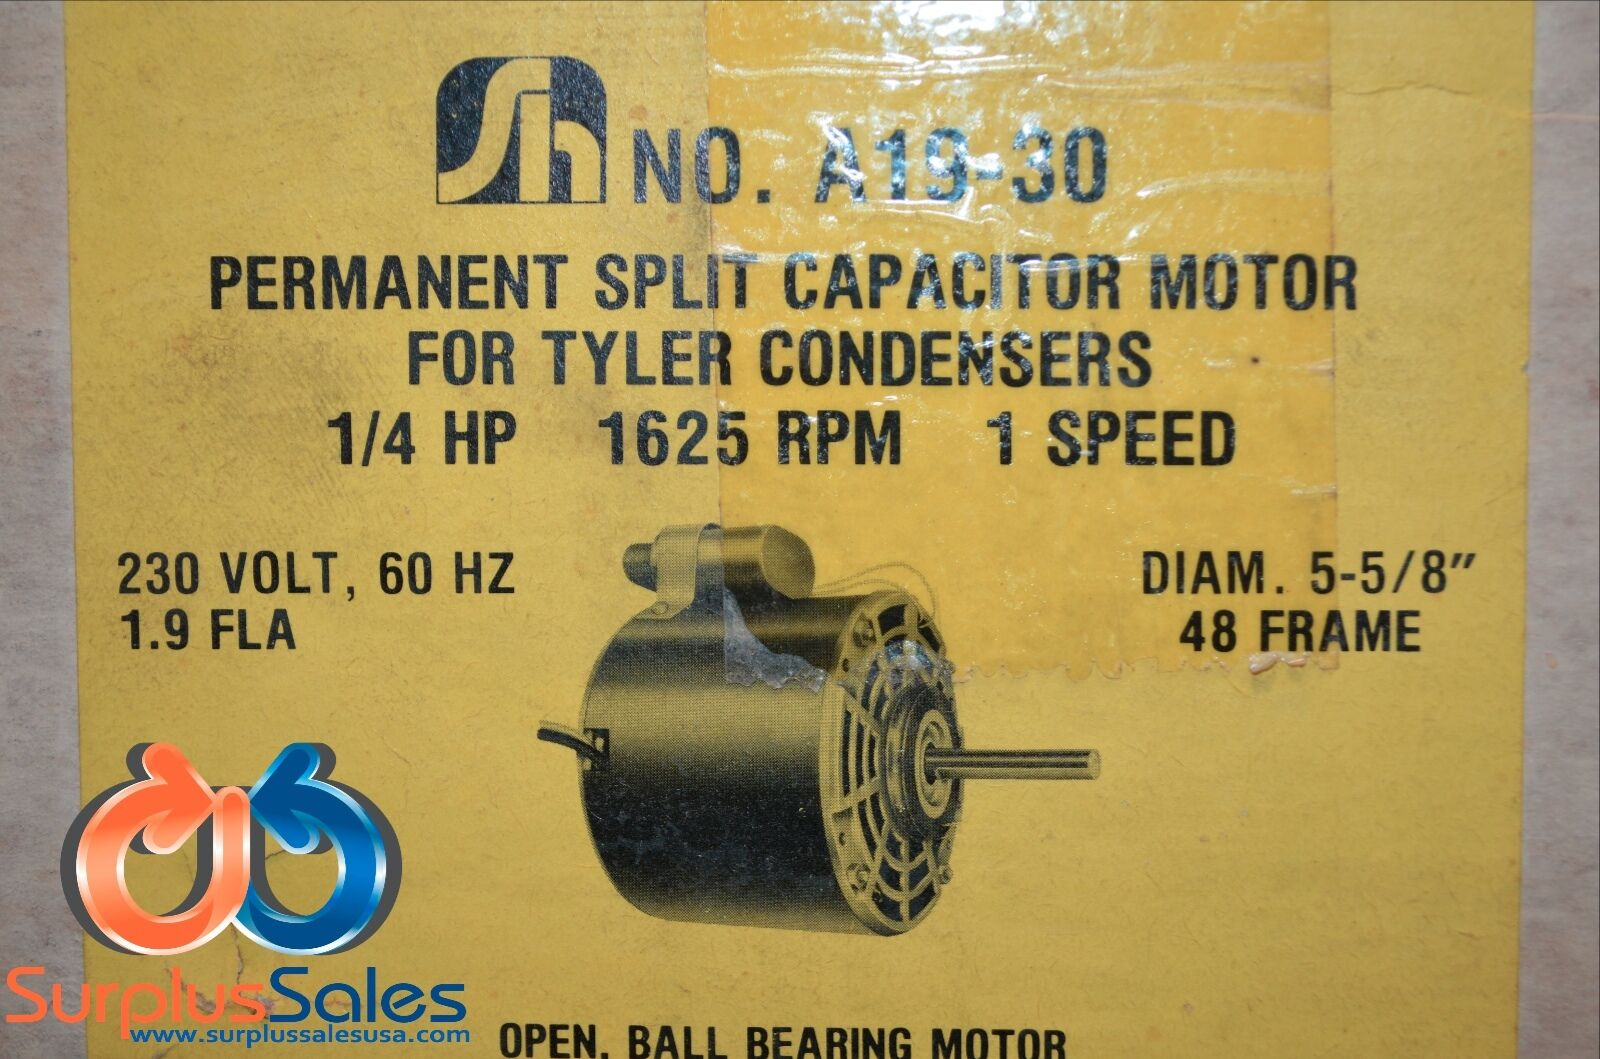 L1509t Baldor Capacitor Diagram Trusted Wiring Generator Diagrams Sid Harveys 1 4 Hp 1625 Rpm Gt 48 Fr 230 V P 323p663 Split Motorcycle Ignition